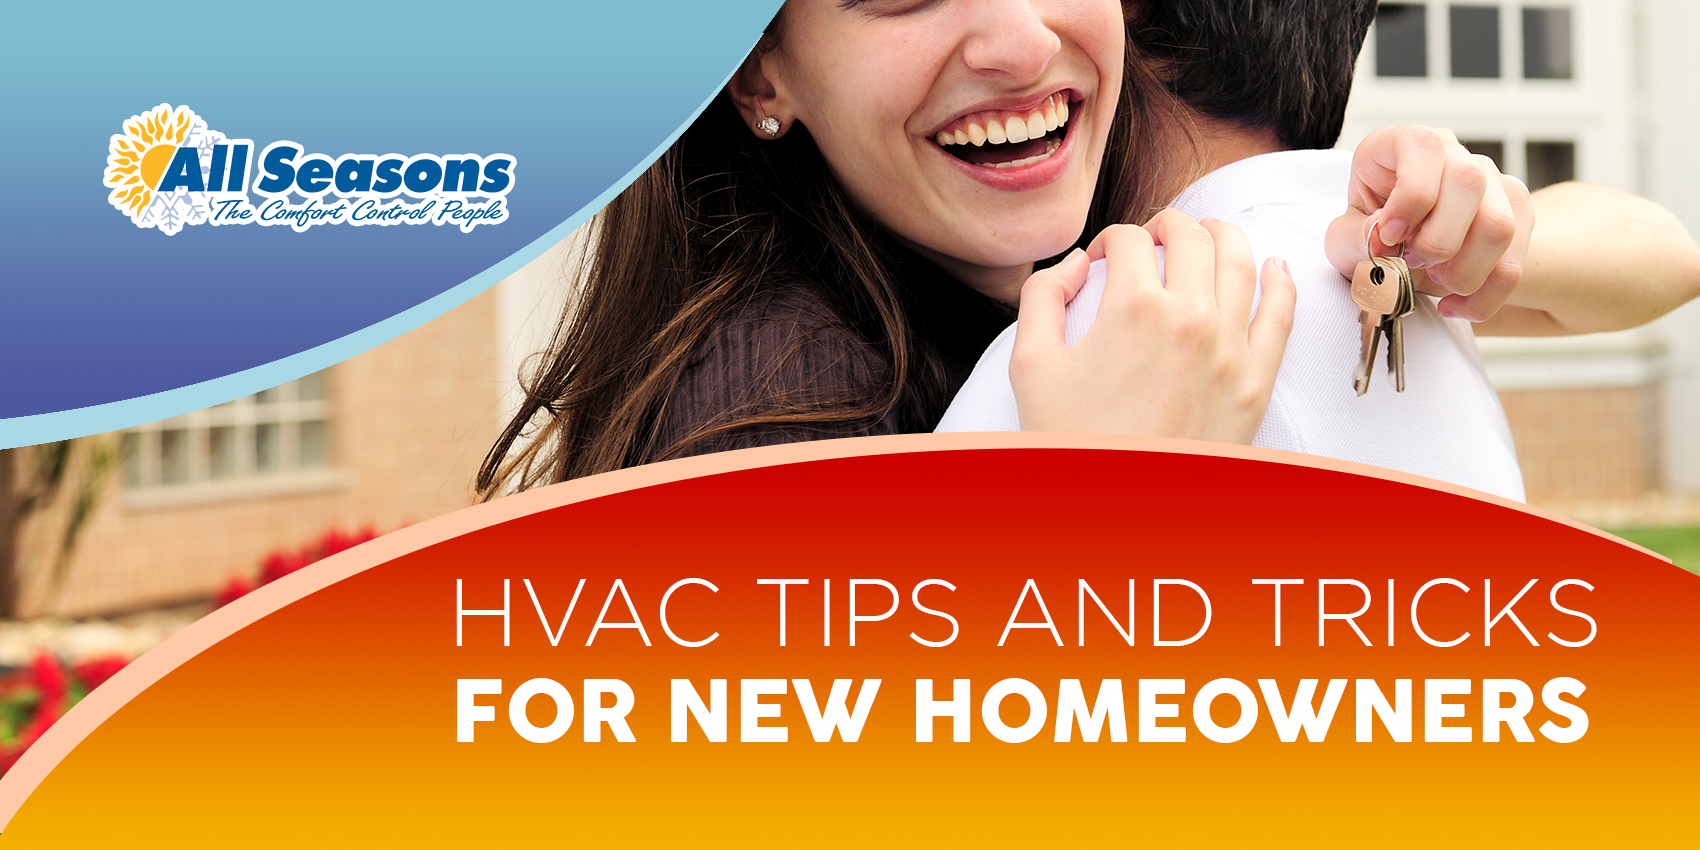 HVAC Tips And Tricks For New Homeowners